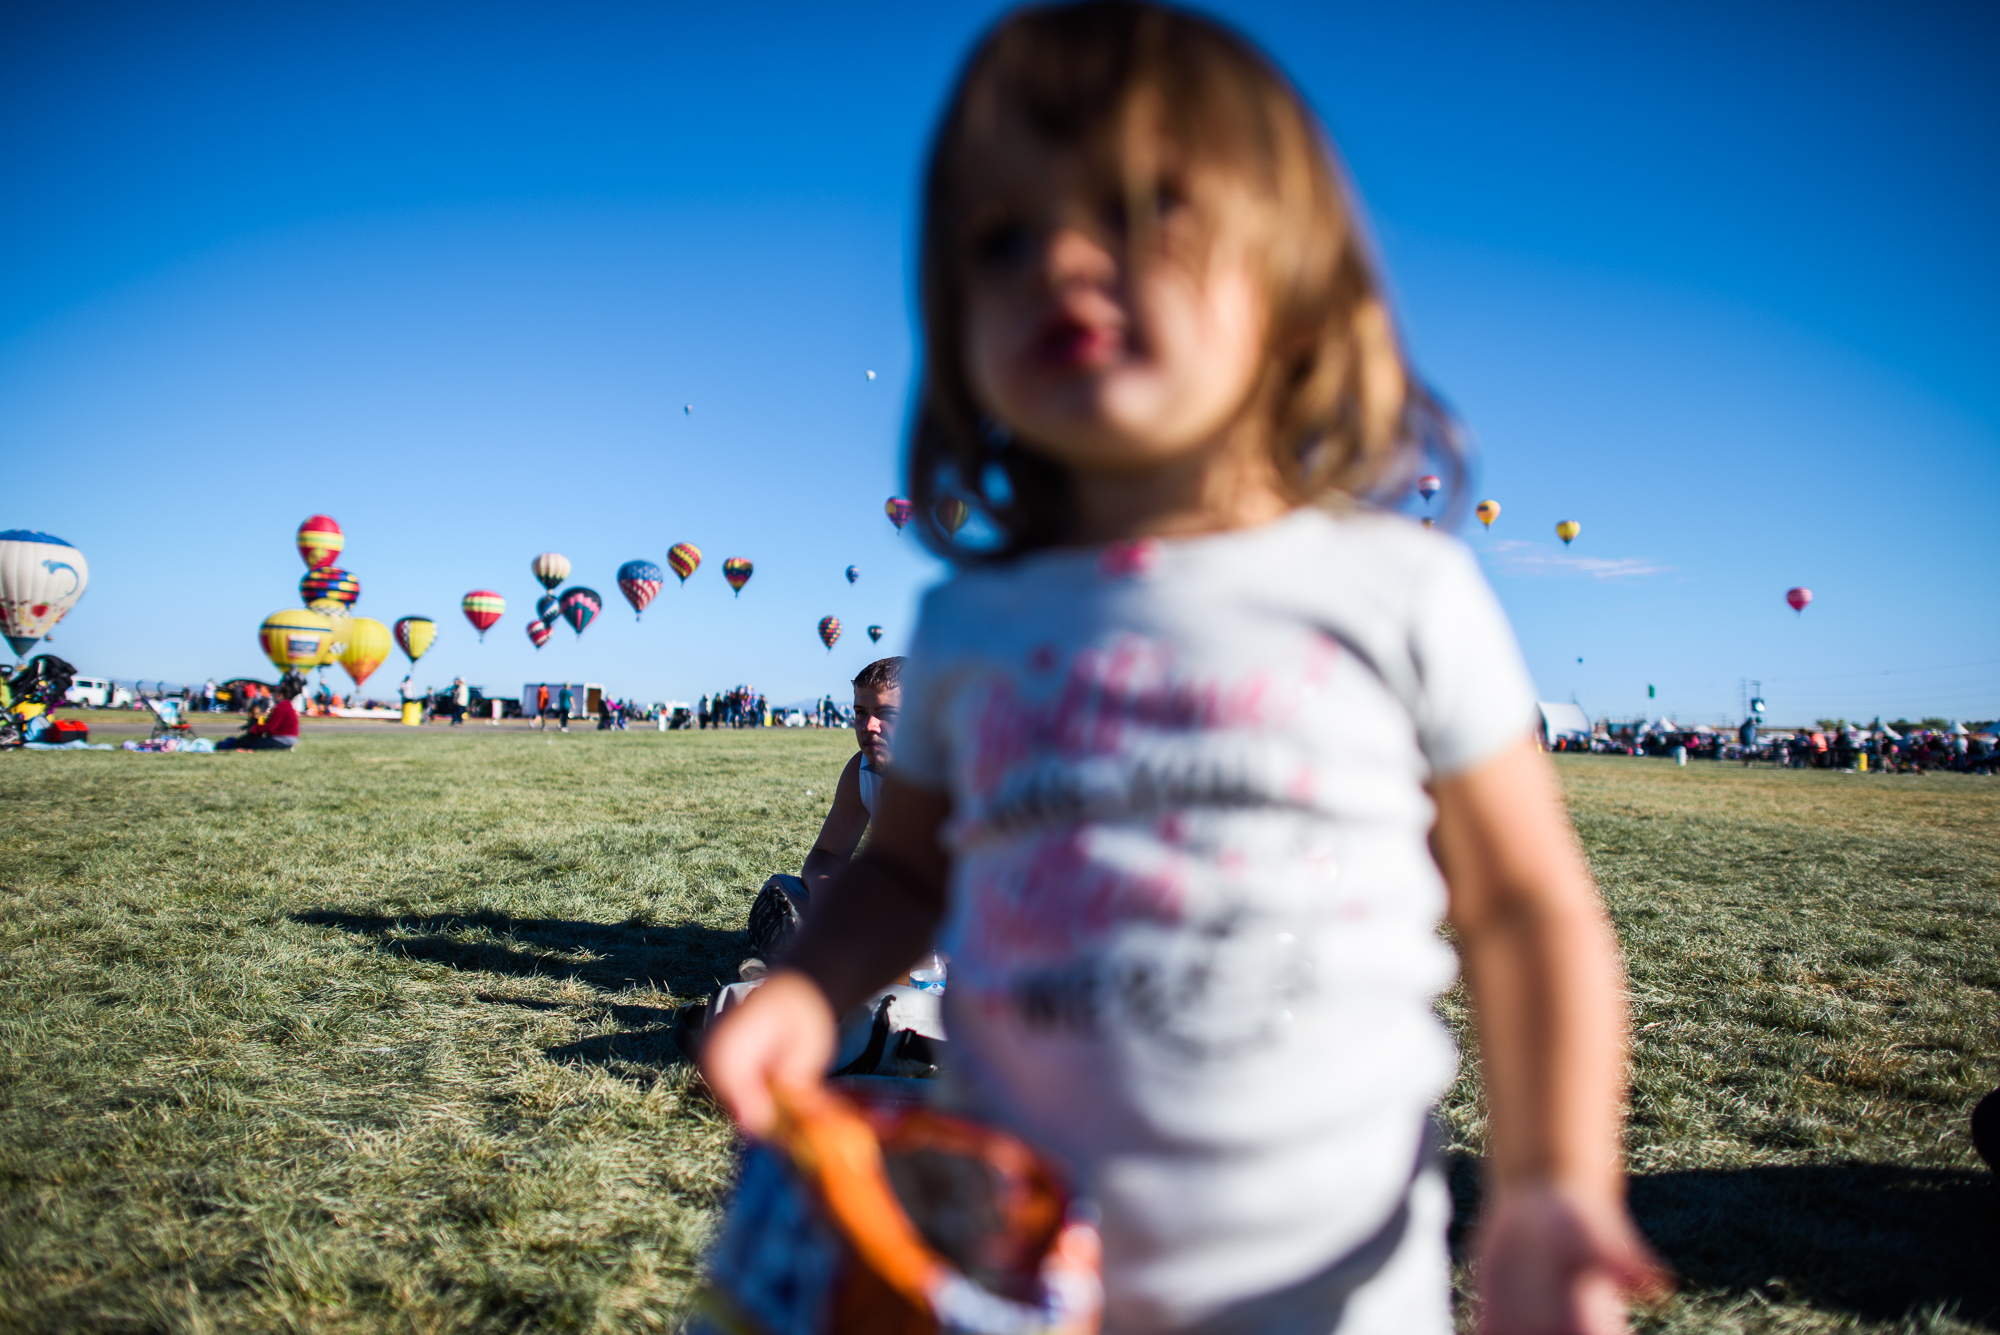 Vinny, age 18, and his daughter Jordyn, age 1, gather at the balloon fiesta in Albuquerque, 2017.